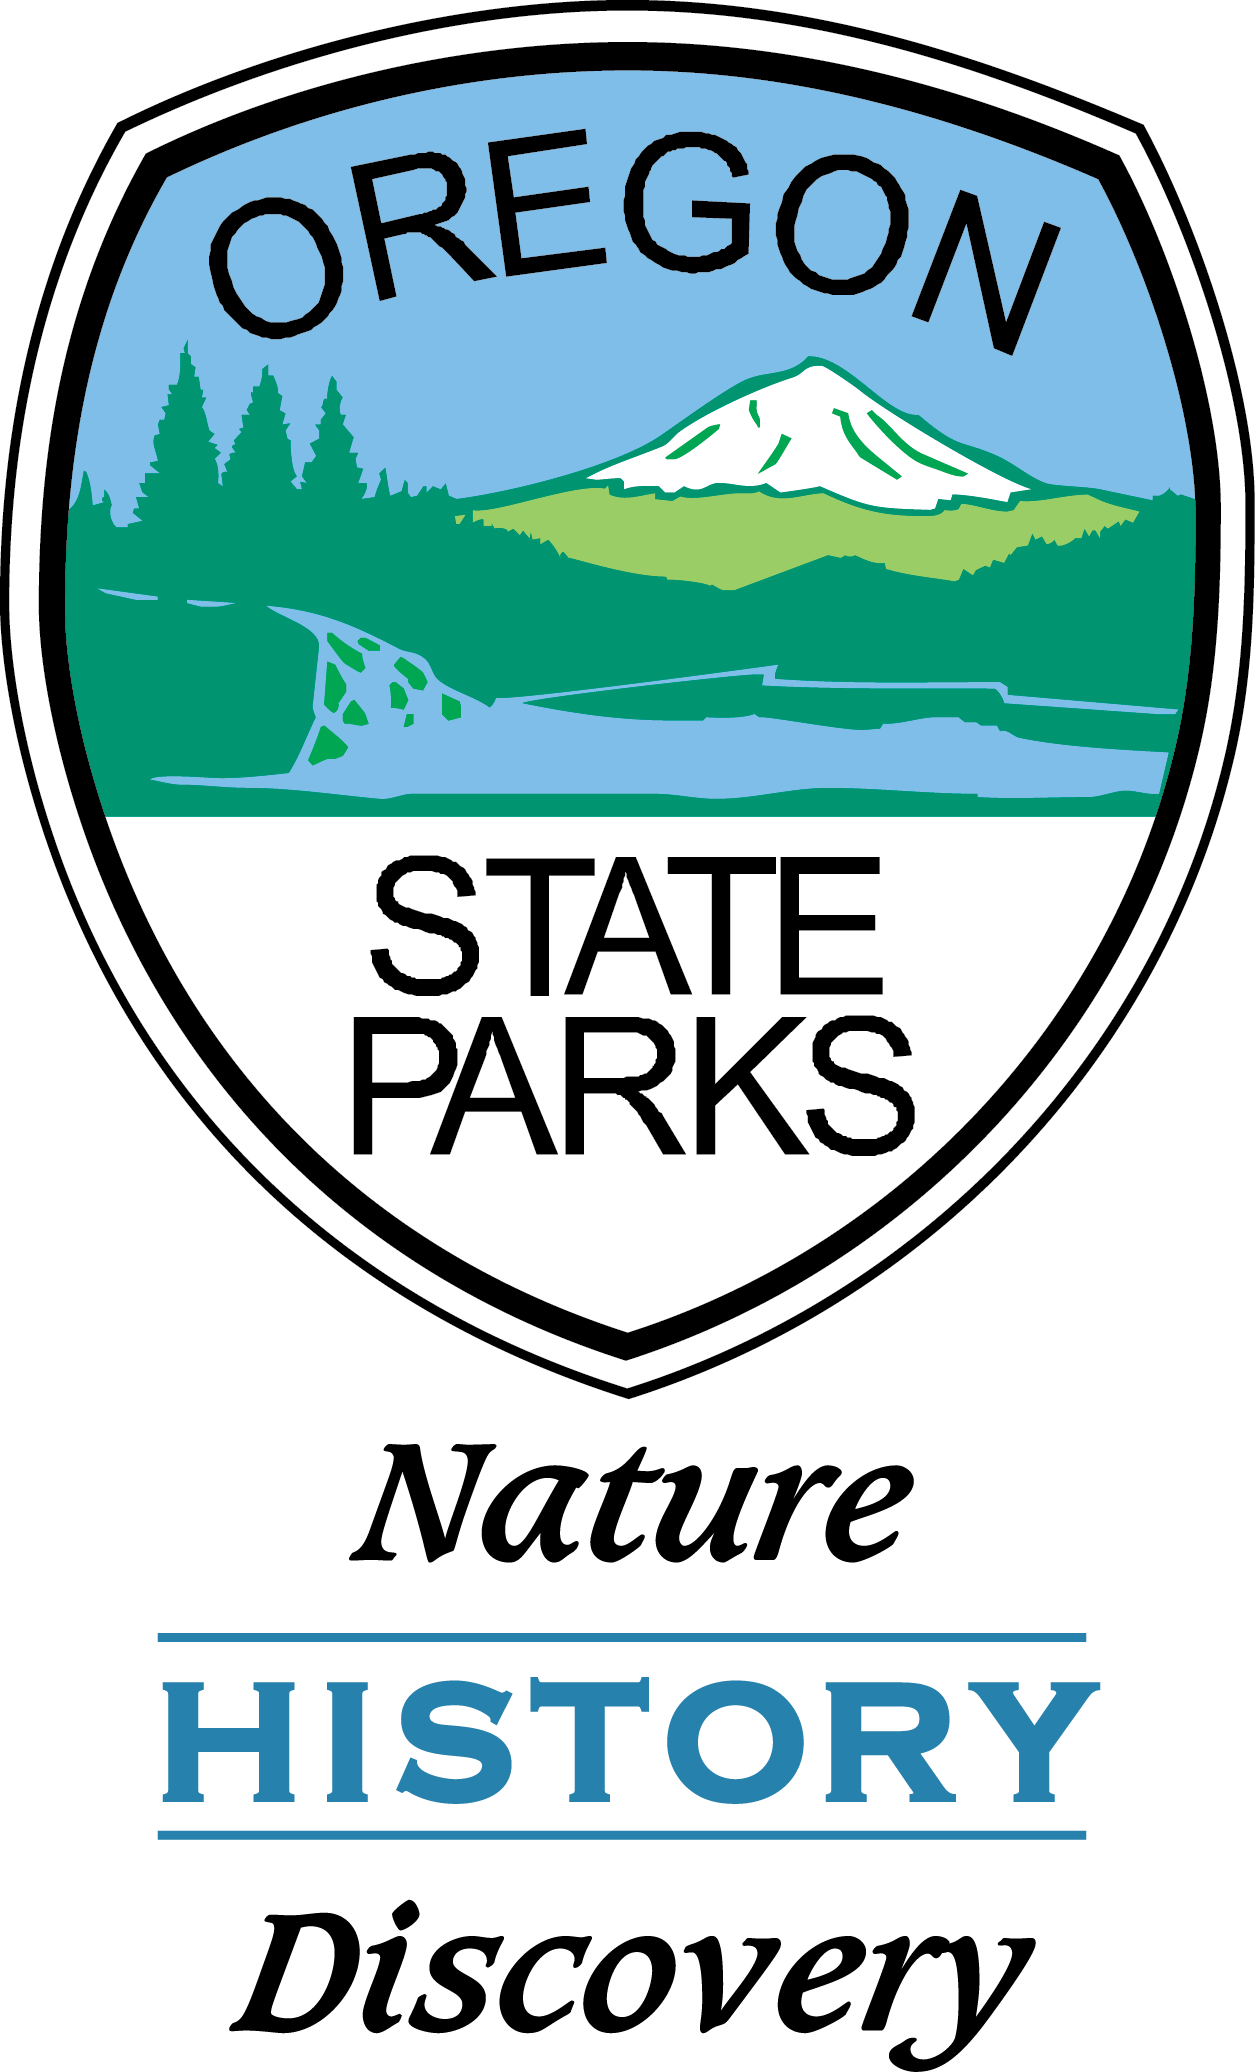 Trail state park